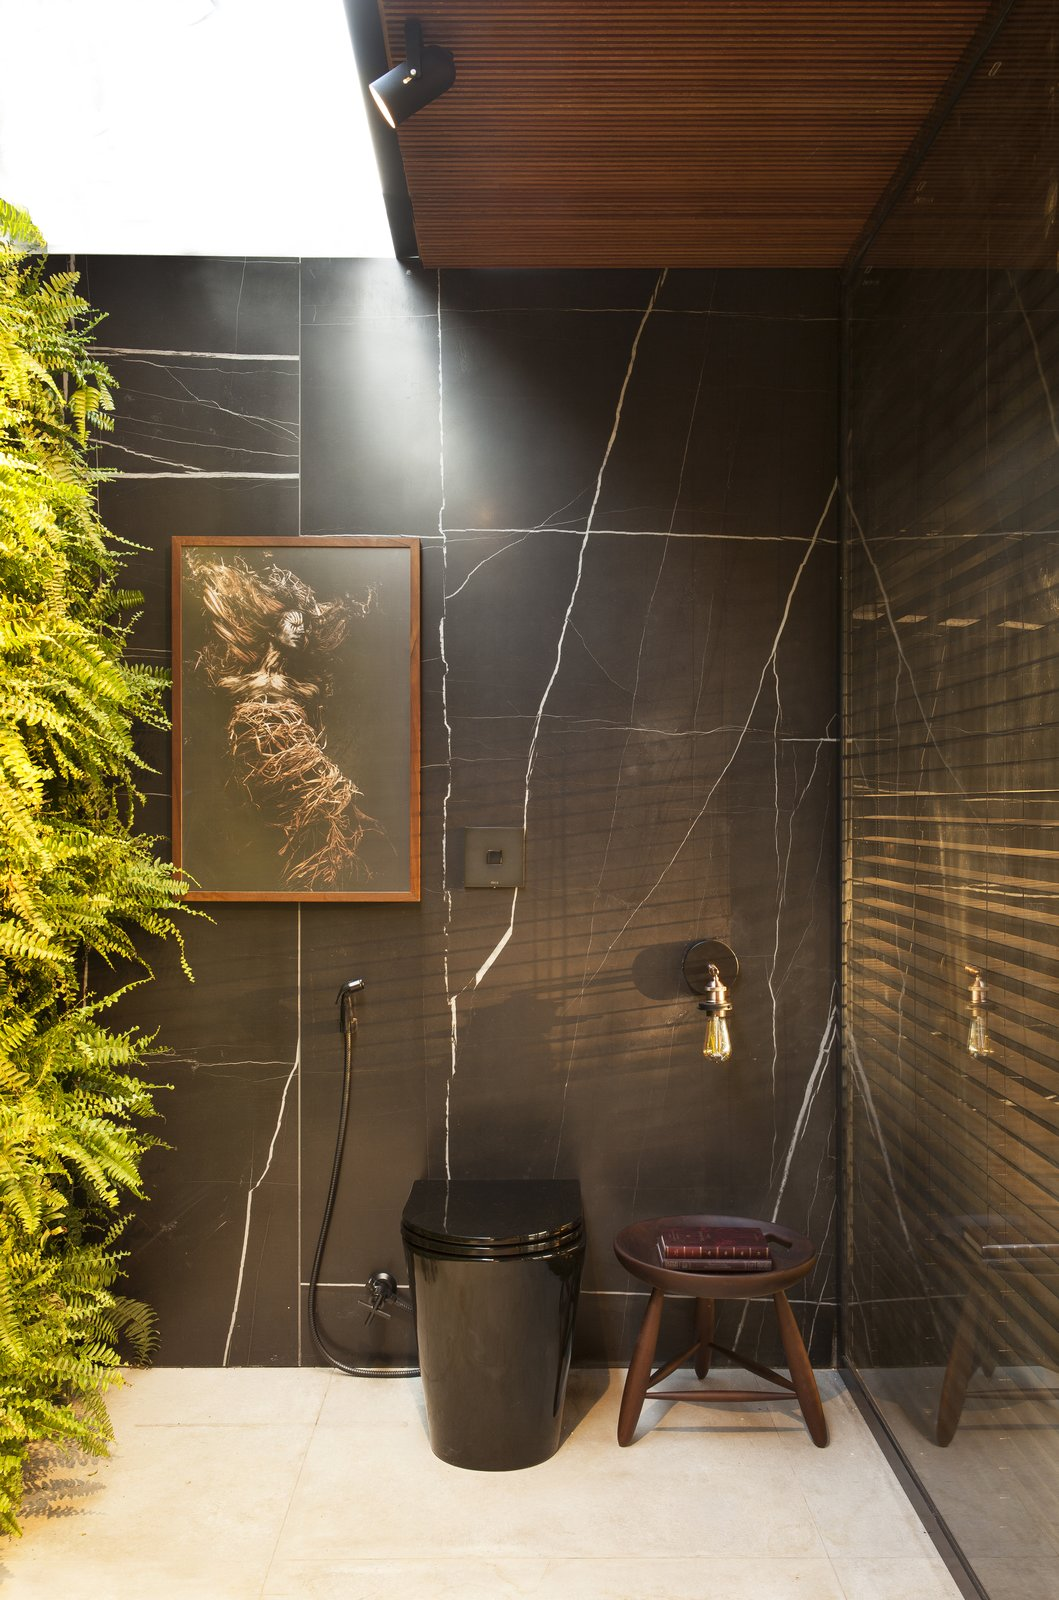 Bath Room, Marble Wall, One Piece Toilet, Track Lighting, and Wall Lighting The black toilet is nearly camouflaged against the marble-clad walls, while art and greenery stand out.  Photo 12 of 14 in An Incredible Brazilian Home That Celebrates Art, Travel, and Nature